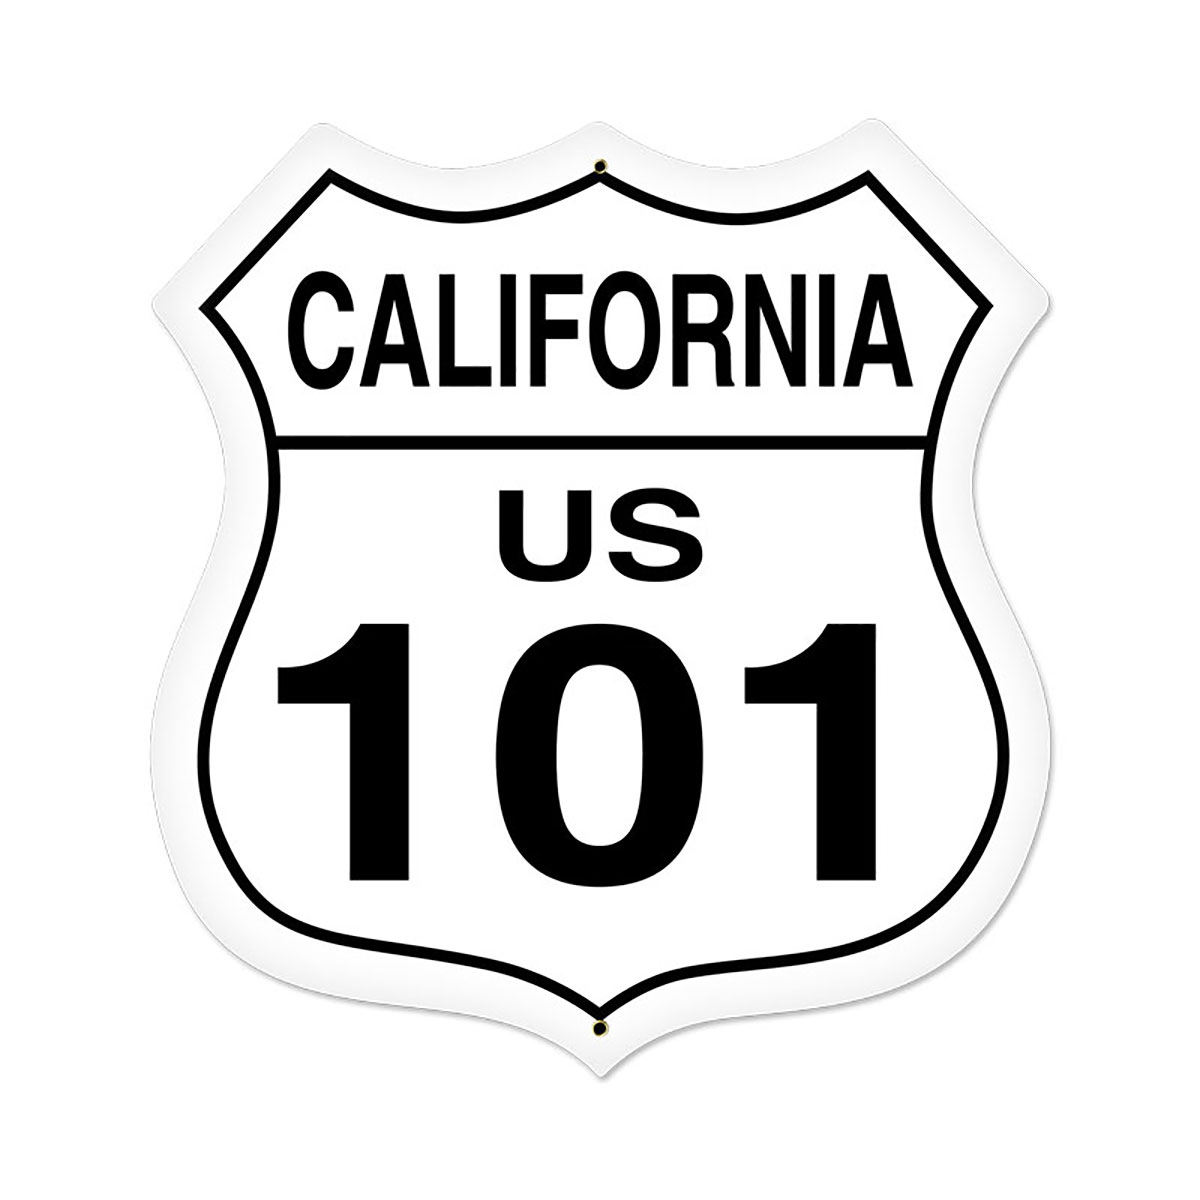 California Route 101 Highway Shield Sign Large 28 X 28 At